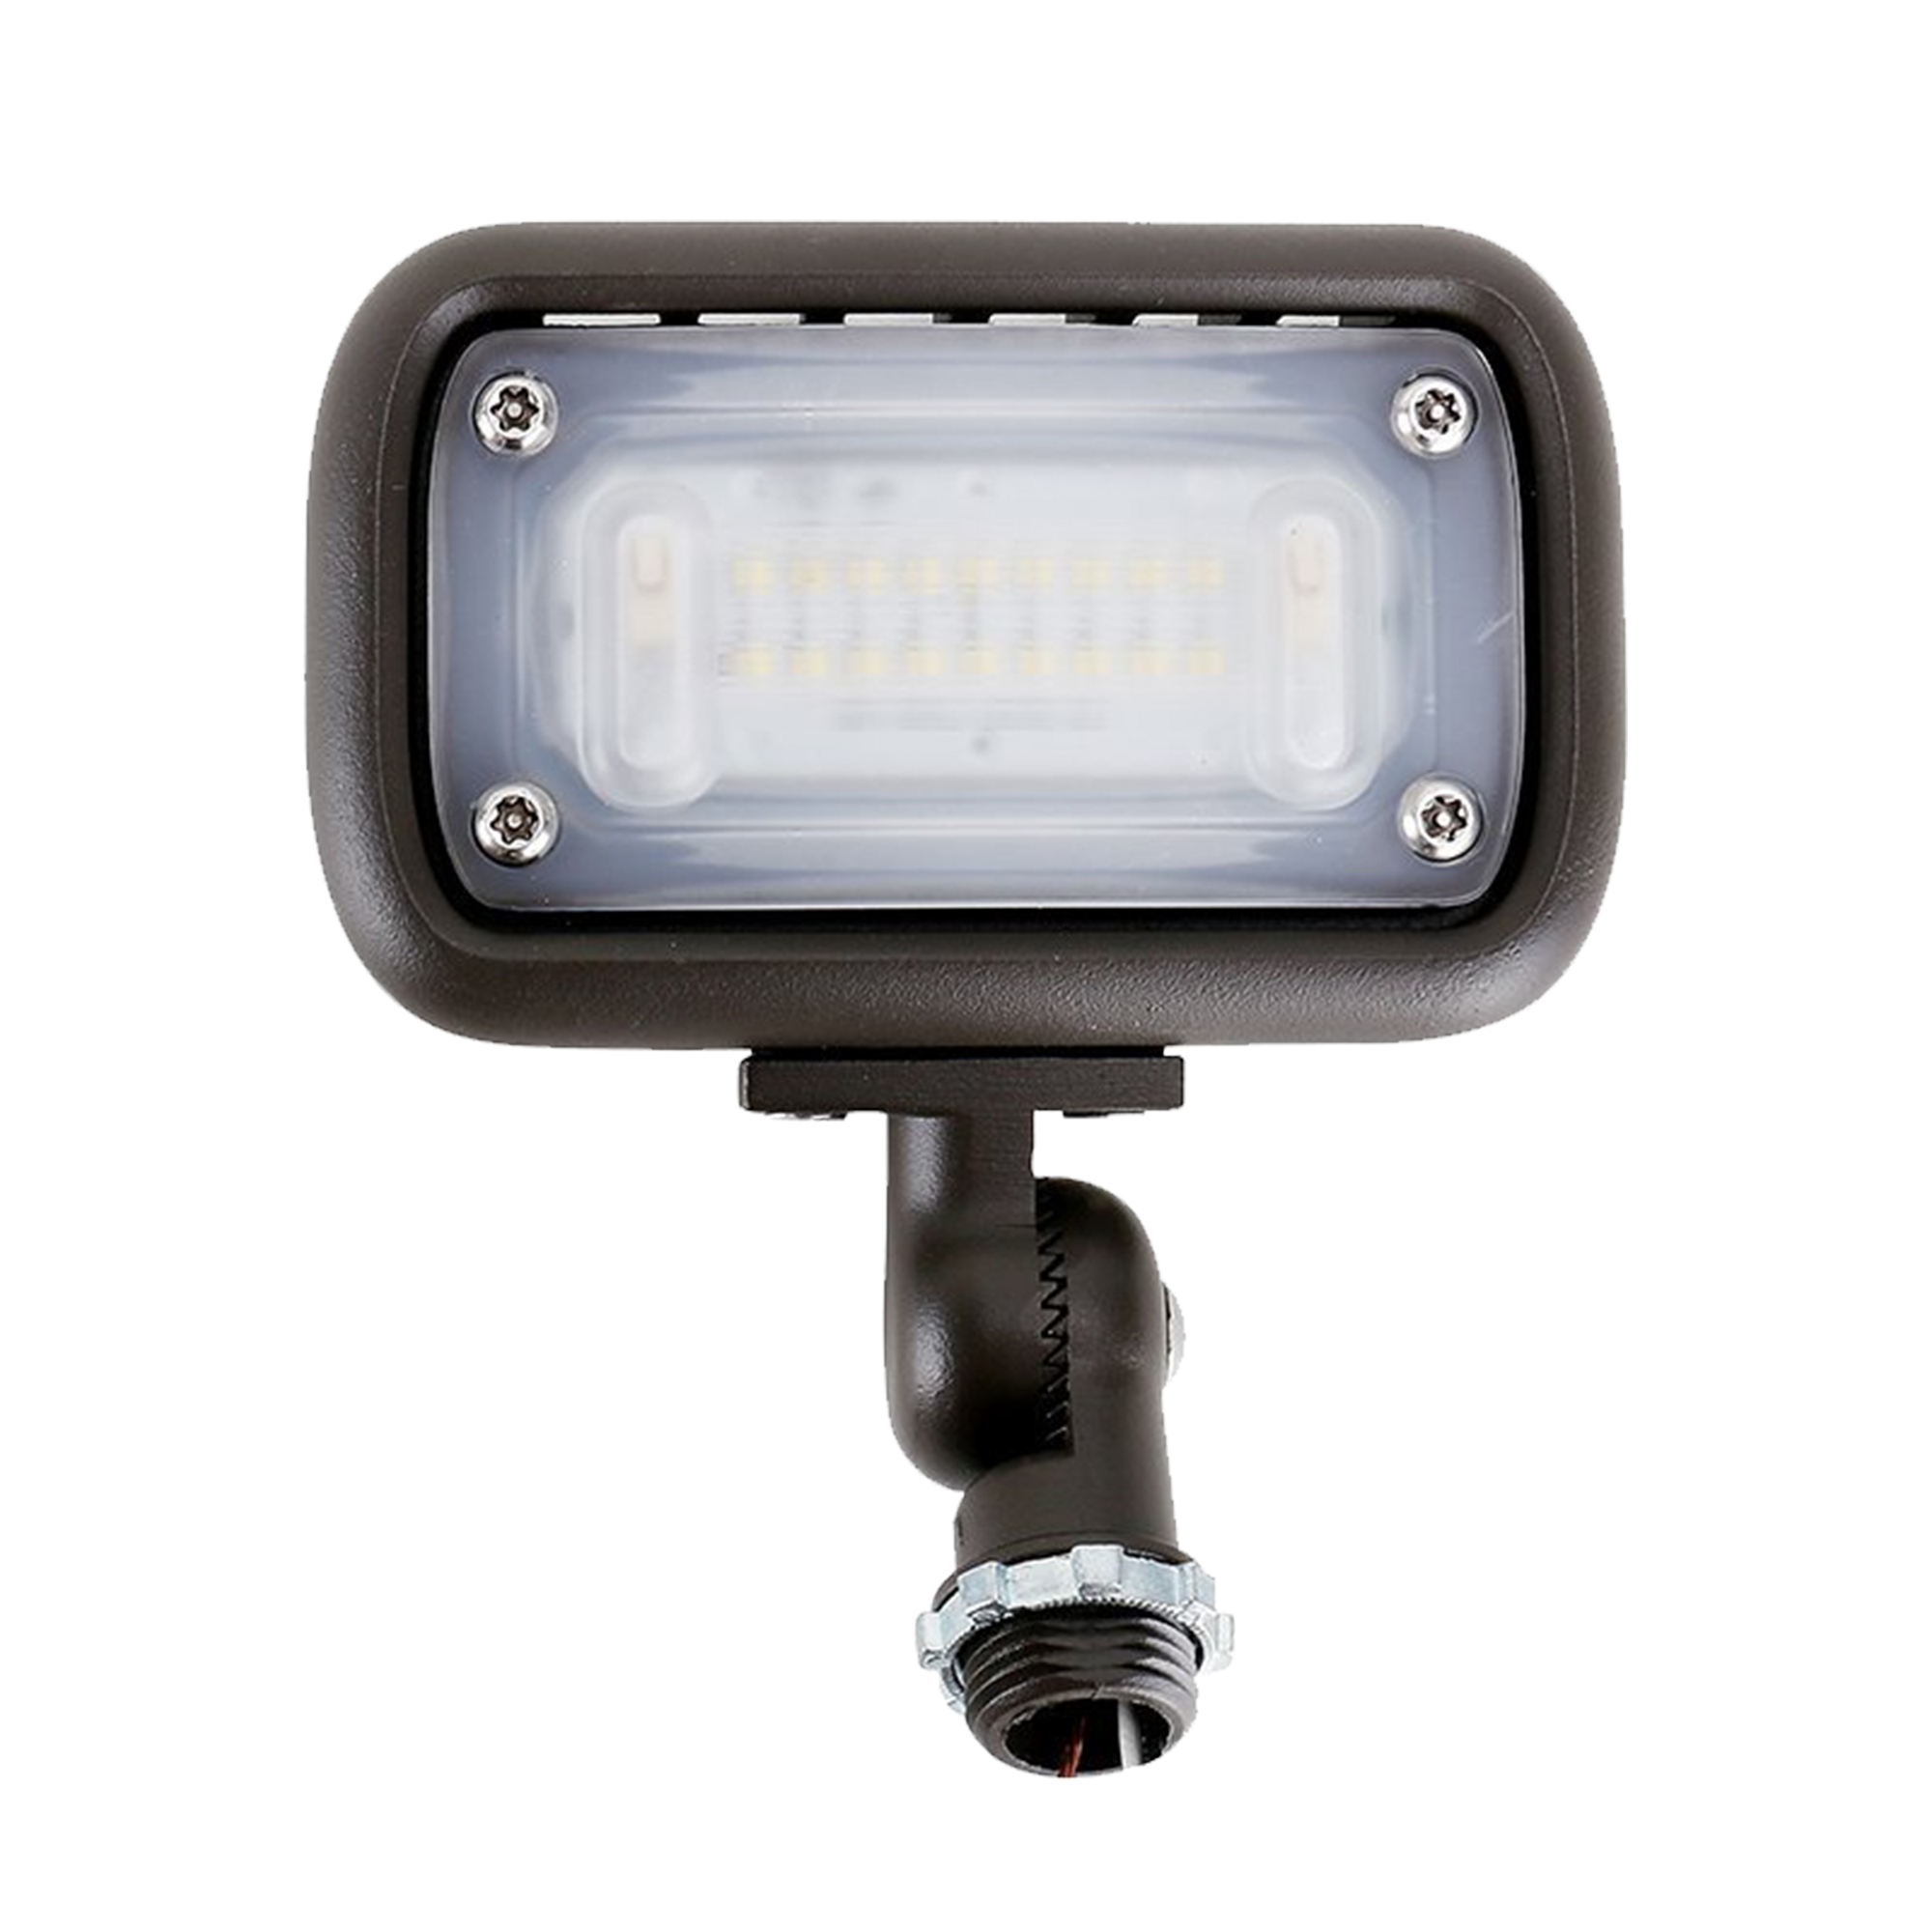 15 watt wall wash flood light newhouse lighting 15 watt wall wash flood light aloadofball Image collections